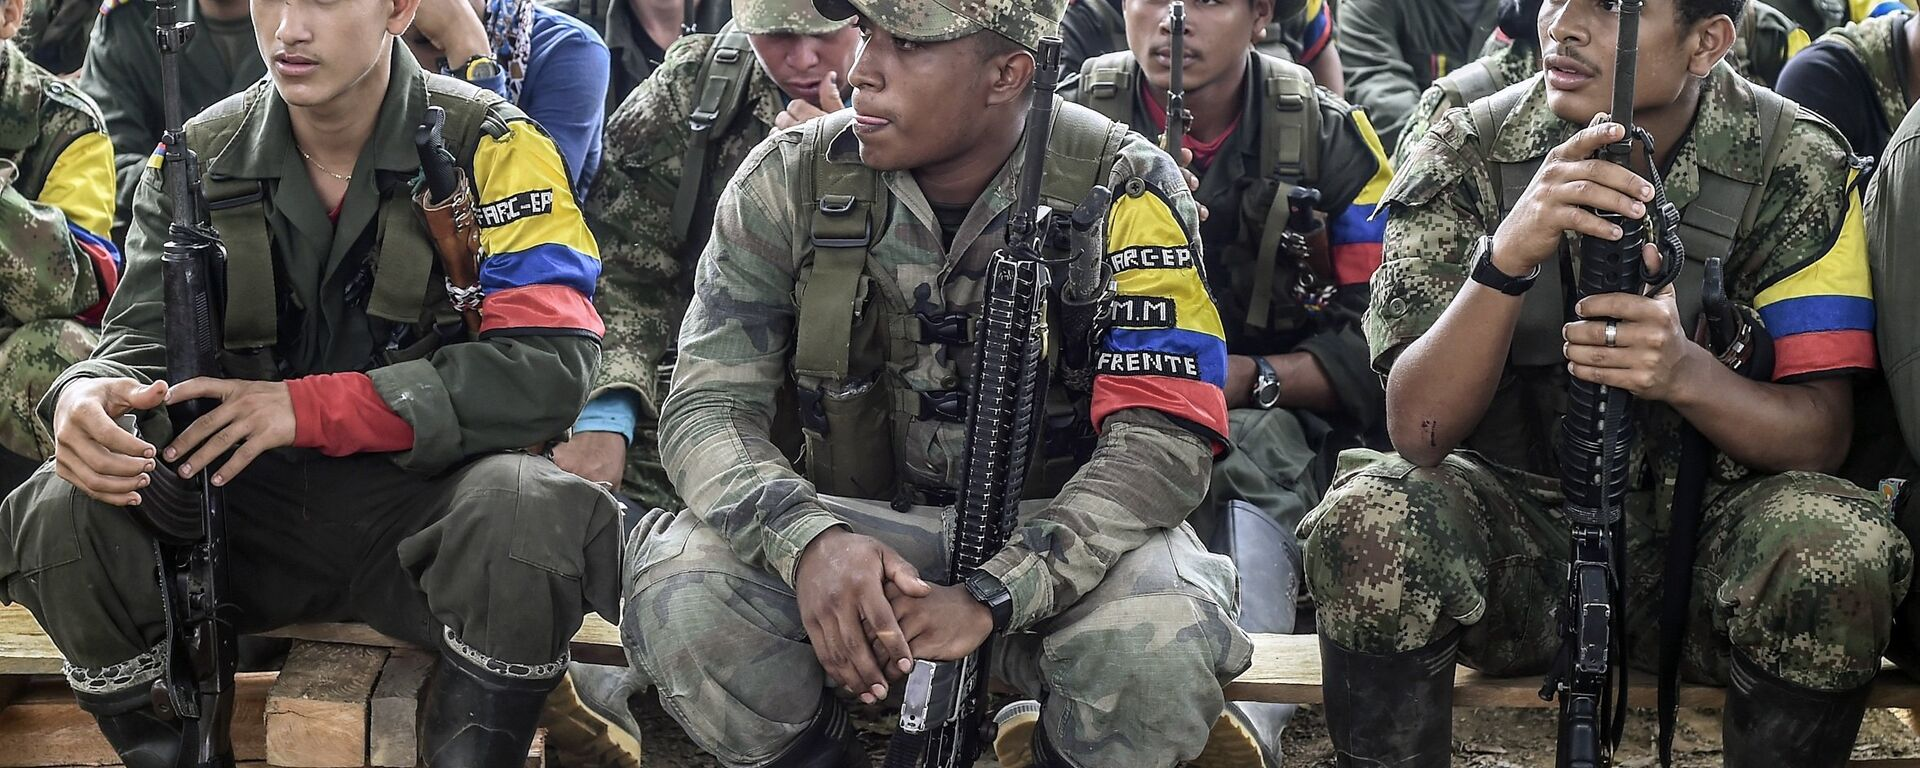 Revolutionary Armed Forces of Colombia (FARC) guerrillas listen during a class on the peace process between the Colombian government and their force, at a camp in the Colombian mountains on February 18, 2016. - Sputnik Mundo, 1920, 04.10.2021